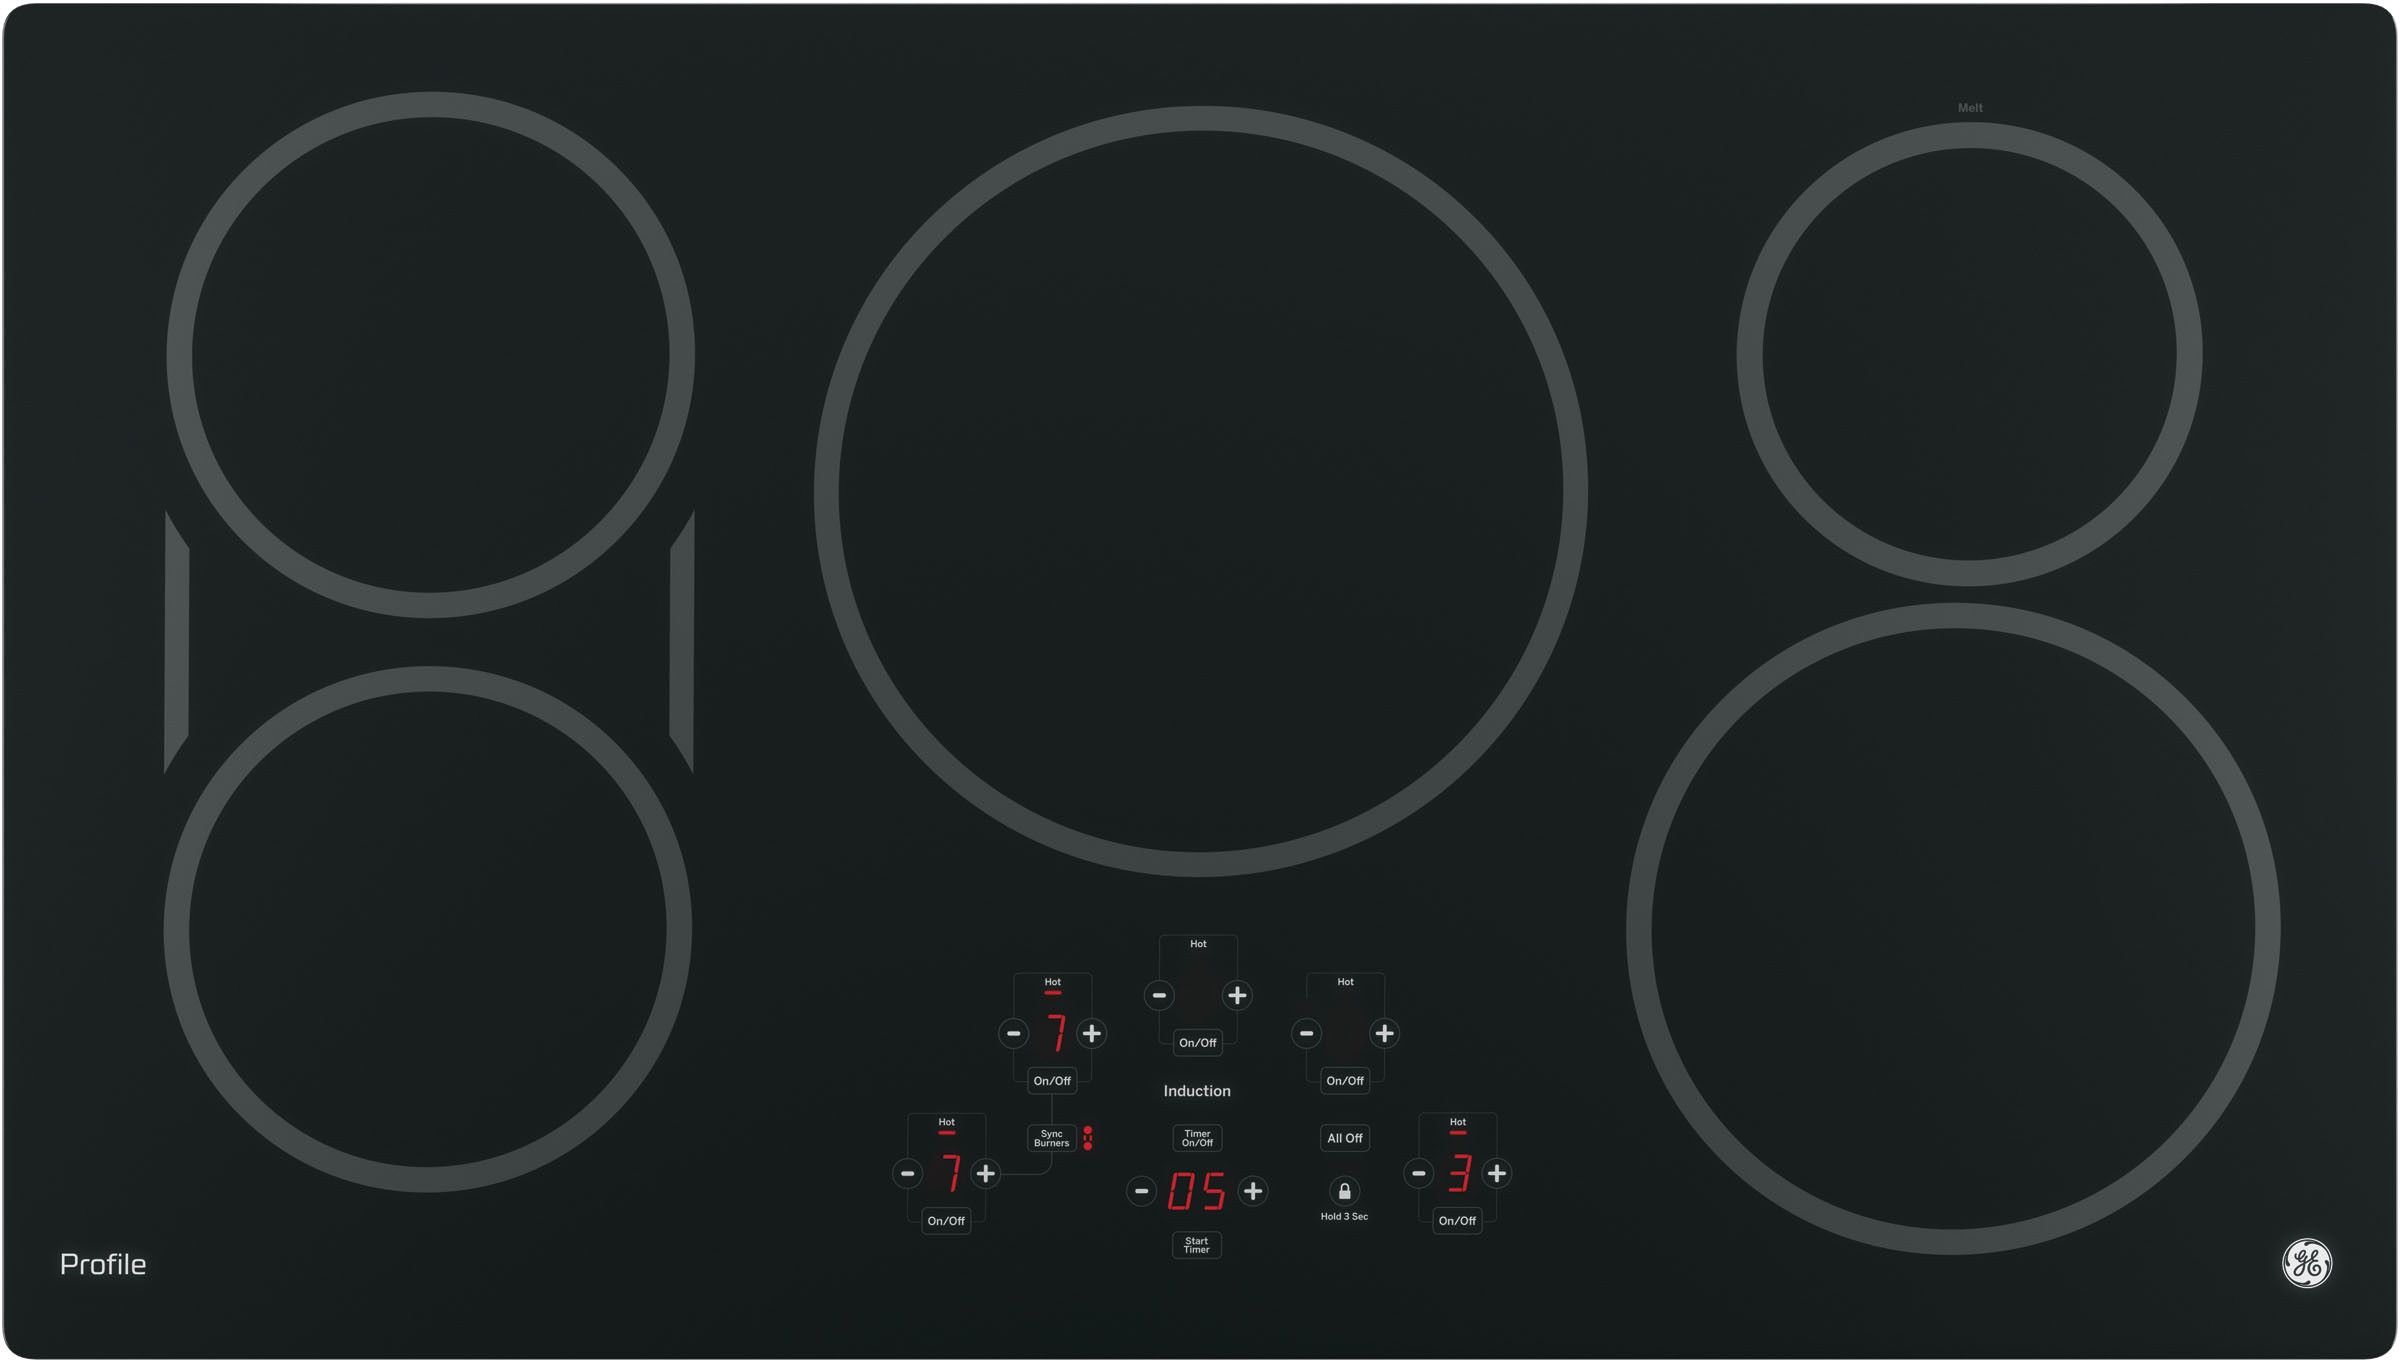 Ge Php9036djbb 36 Inch Induction Cooktop With 5 Elements 3 700 Watt Element Pan Size Sensors Syncburners Red Led Display Kitchen Timer